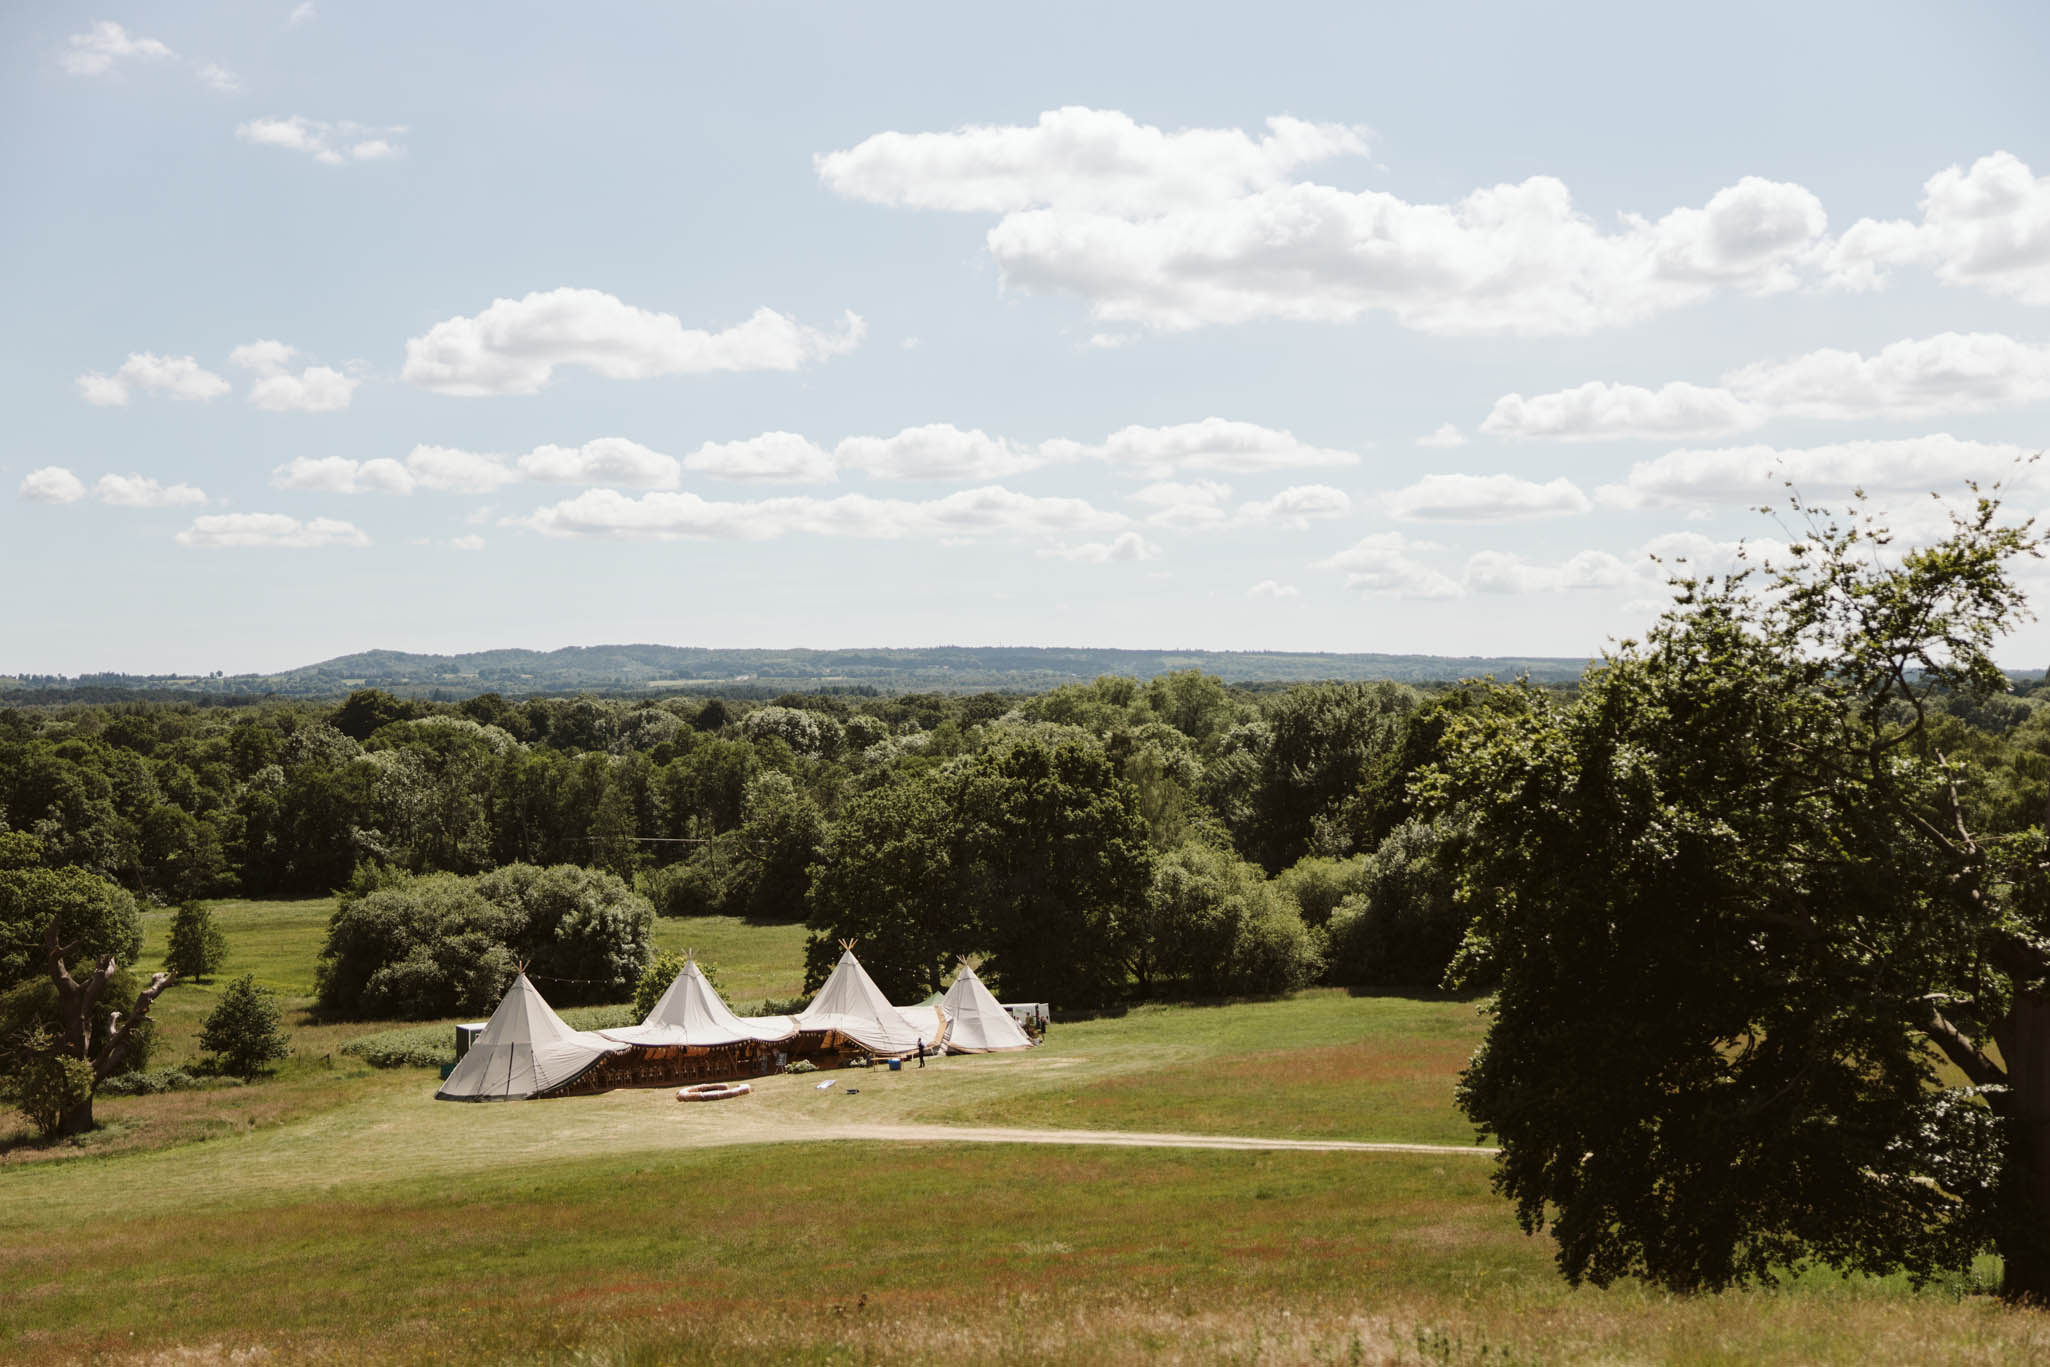 row of tipis in a field